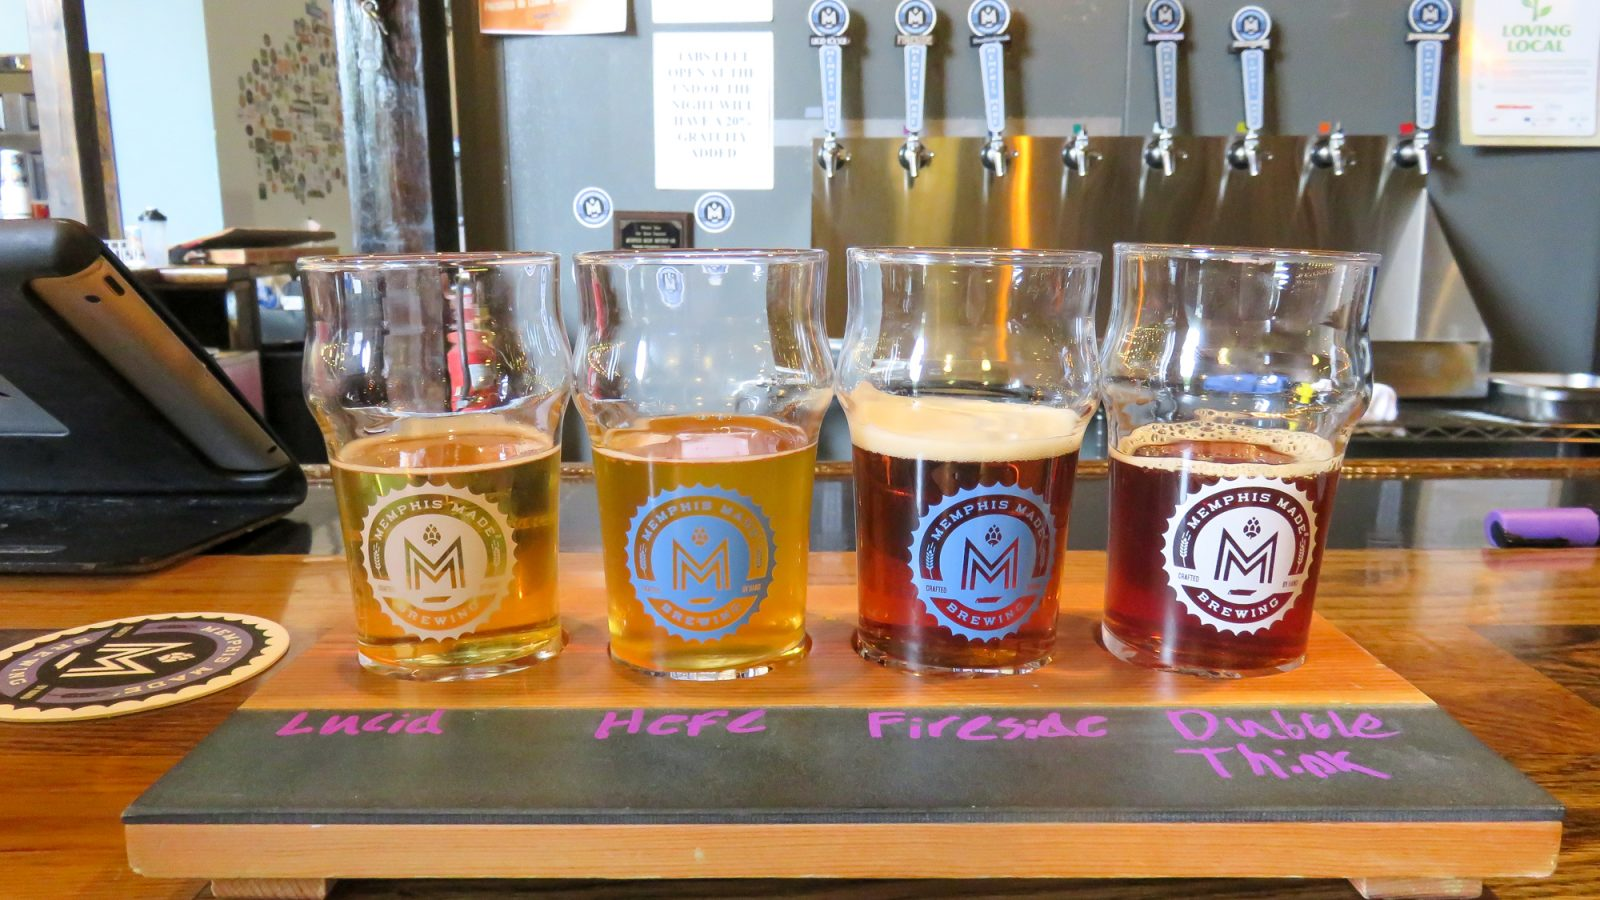 Cheers for Beers! An Offbeat Cheat Sheet to Memphis Craft Breweries   Bosco's in Overton Square   Ghost River Brewing   Memphis Made   Wiseacre   High Cotton   Midtown and Downtown Memphis, Tennessee   Craft beer taprooms   Brewery tours